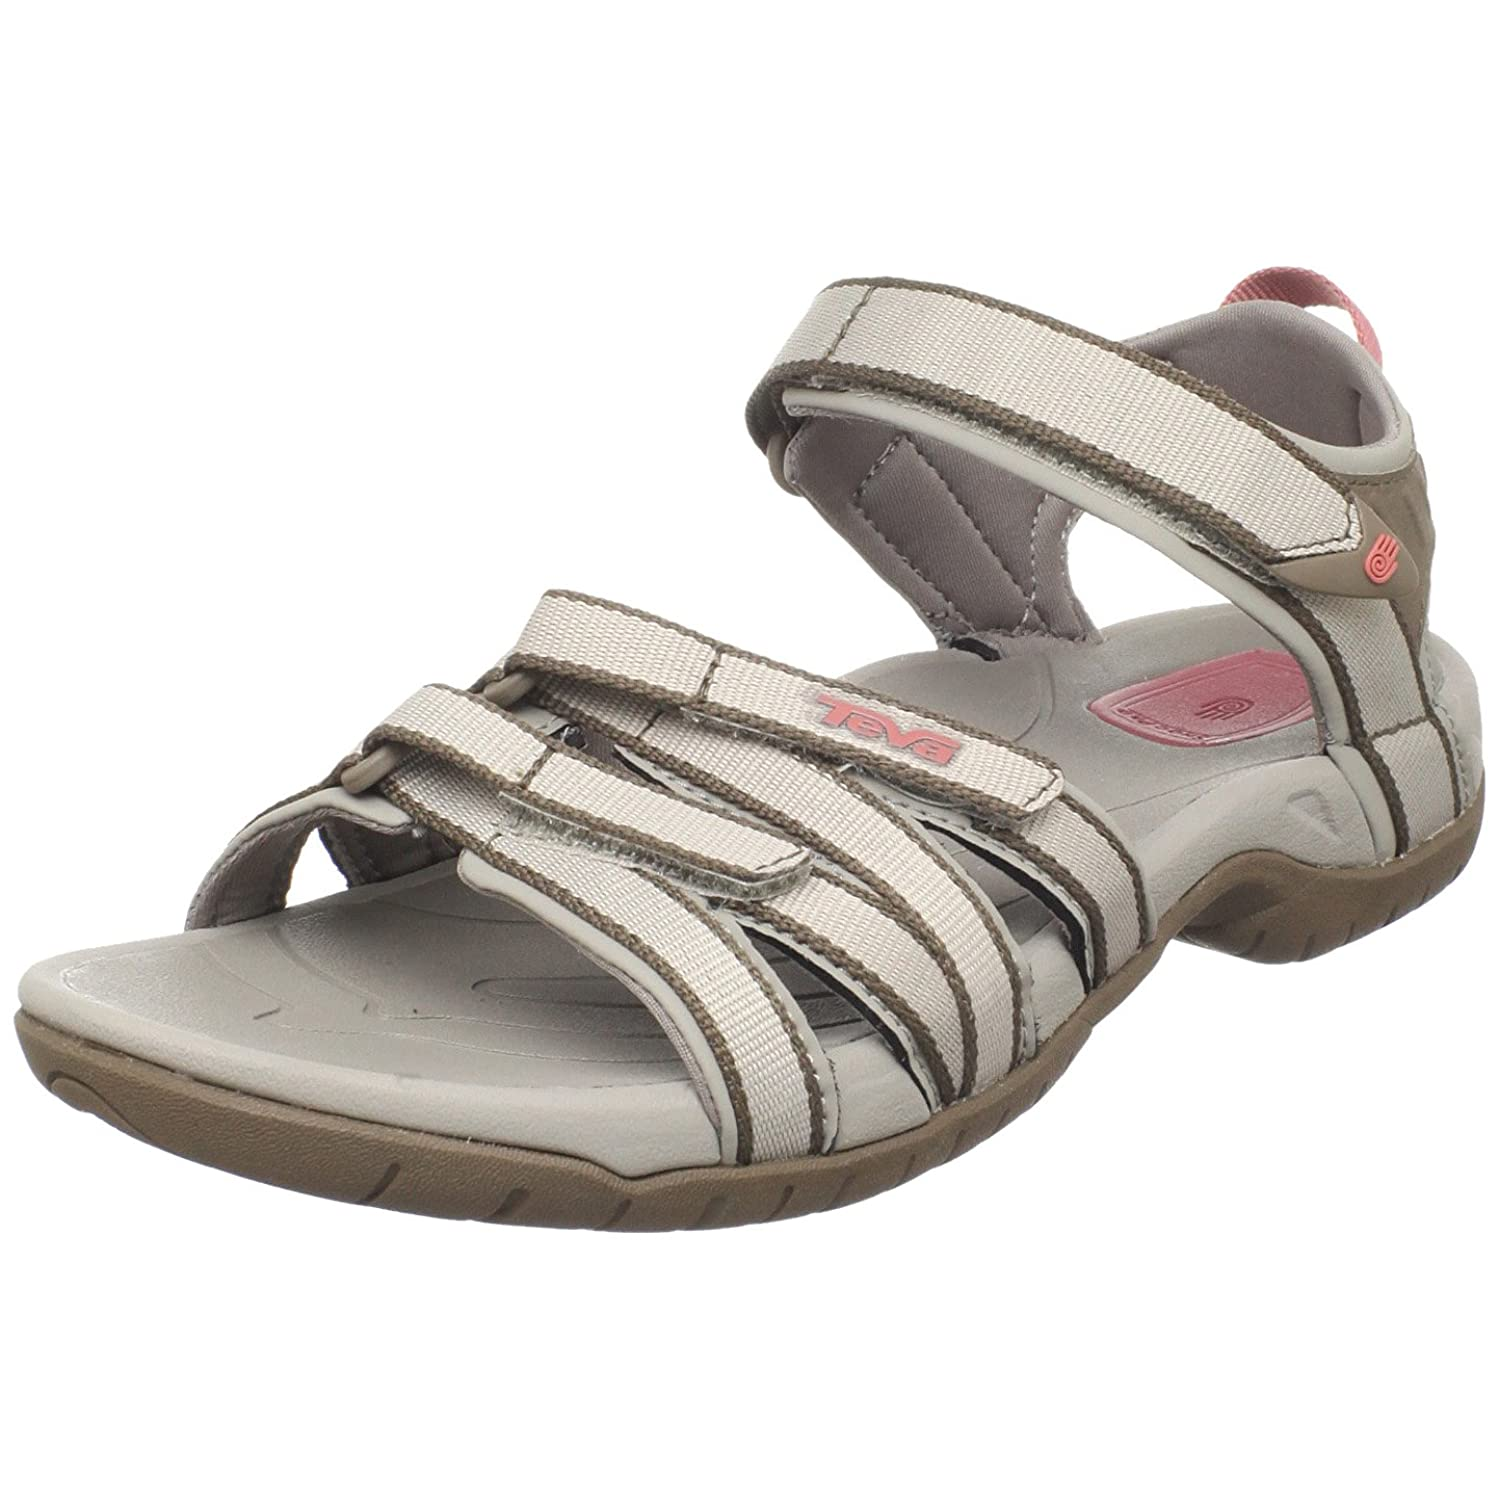 0398507f2606 Best Hiking Sandals For Women – Reviews And Buyer s Guide 2019